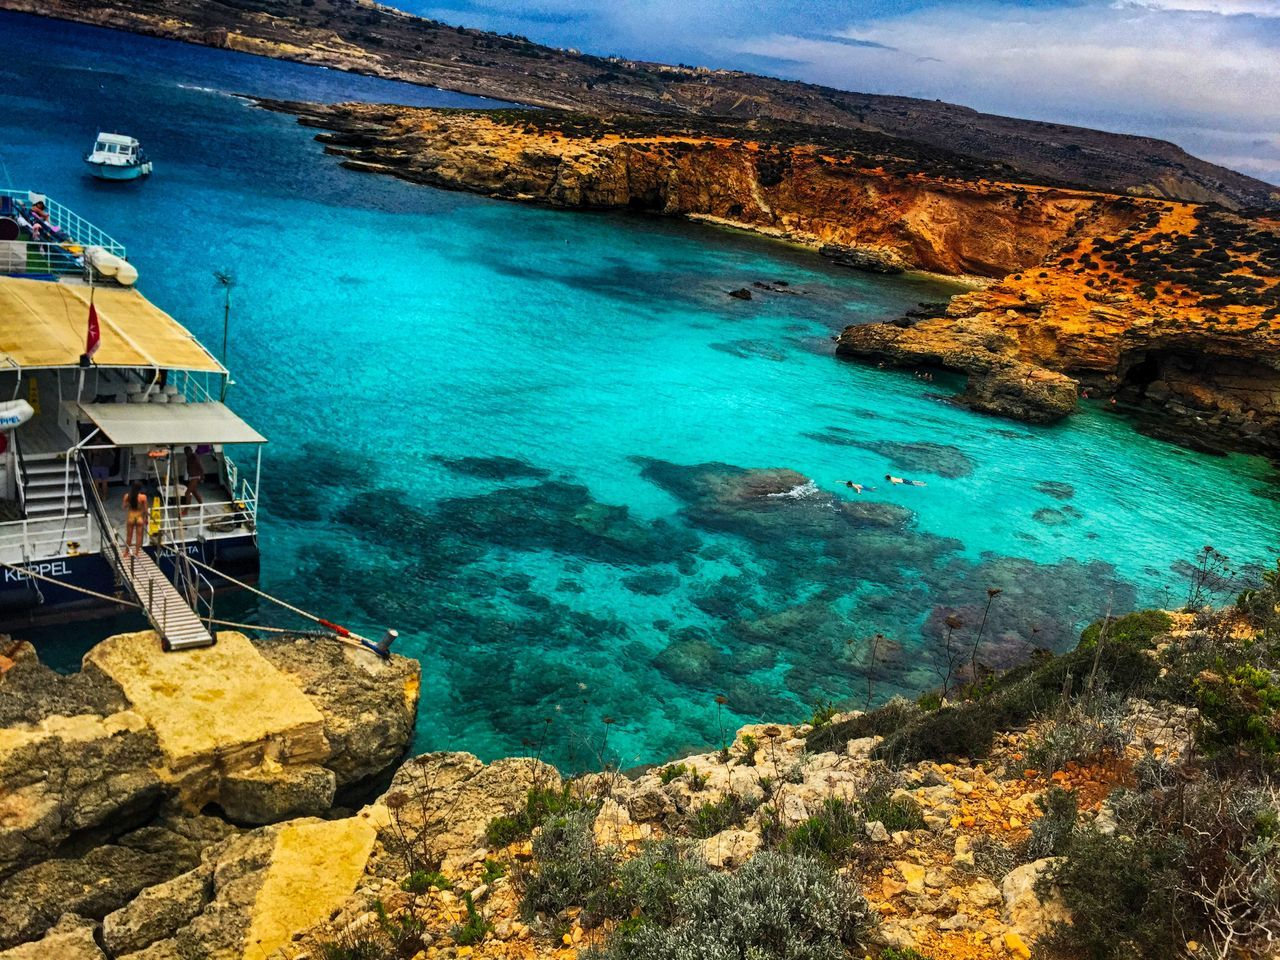 https://www.youtube.com/watch?v=MTO4Ha5Wdq8&t=579s Beauty In Nature Boat Boat Trip Day Malta Malta♥ Nature No People Outdoors Paradise Polish Polishboy  Polishgirl Scenics Sea Sea And Sky Seascape Sky Travel Travel Destinations Traveling Trip Water Water Reflections Water_collection